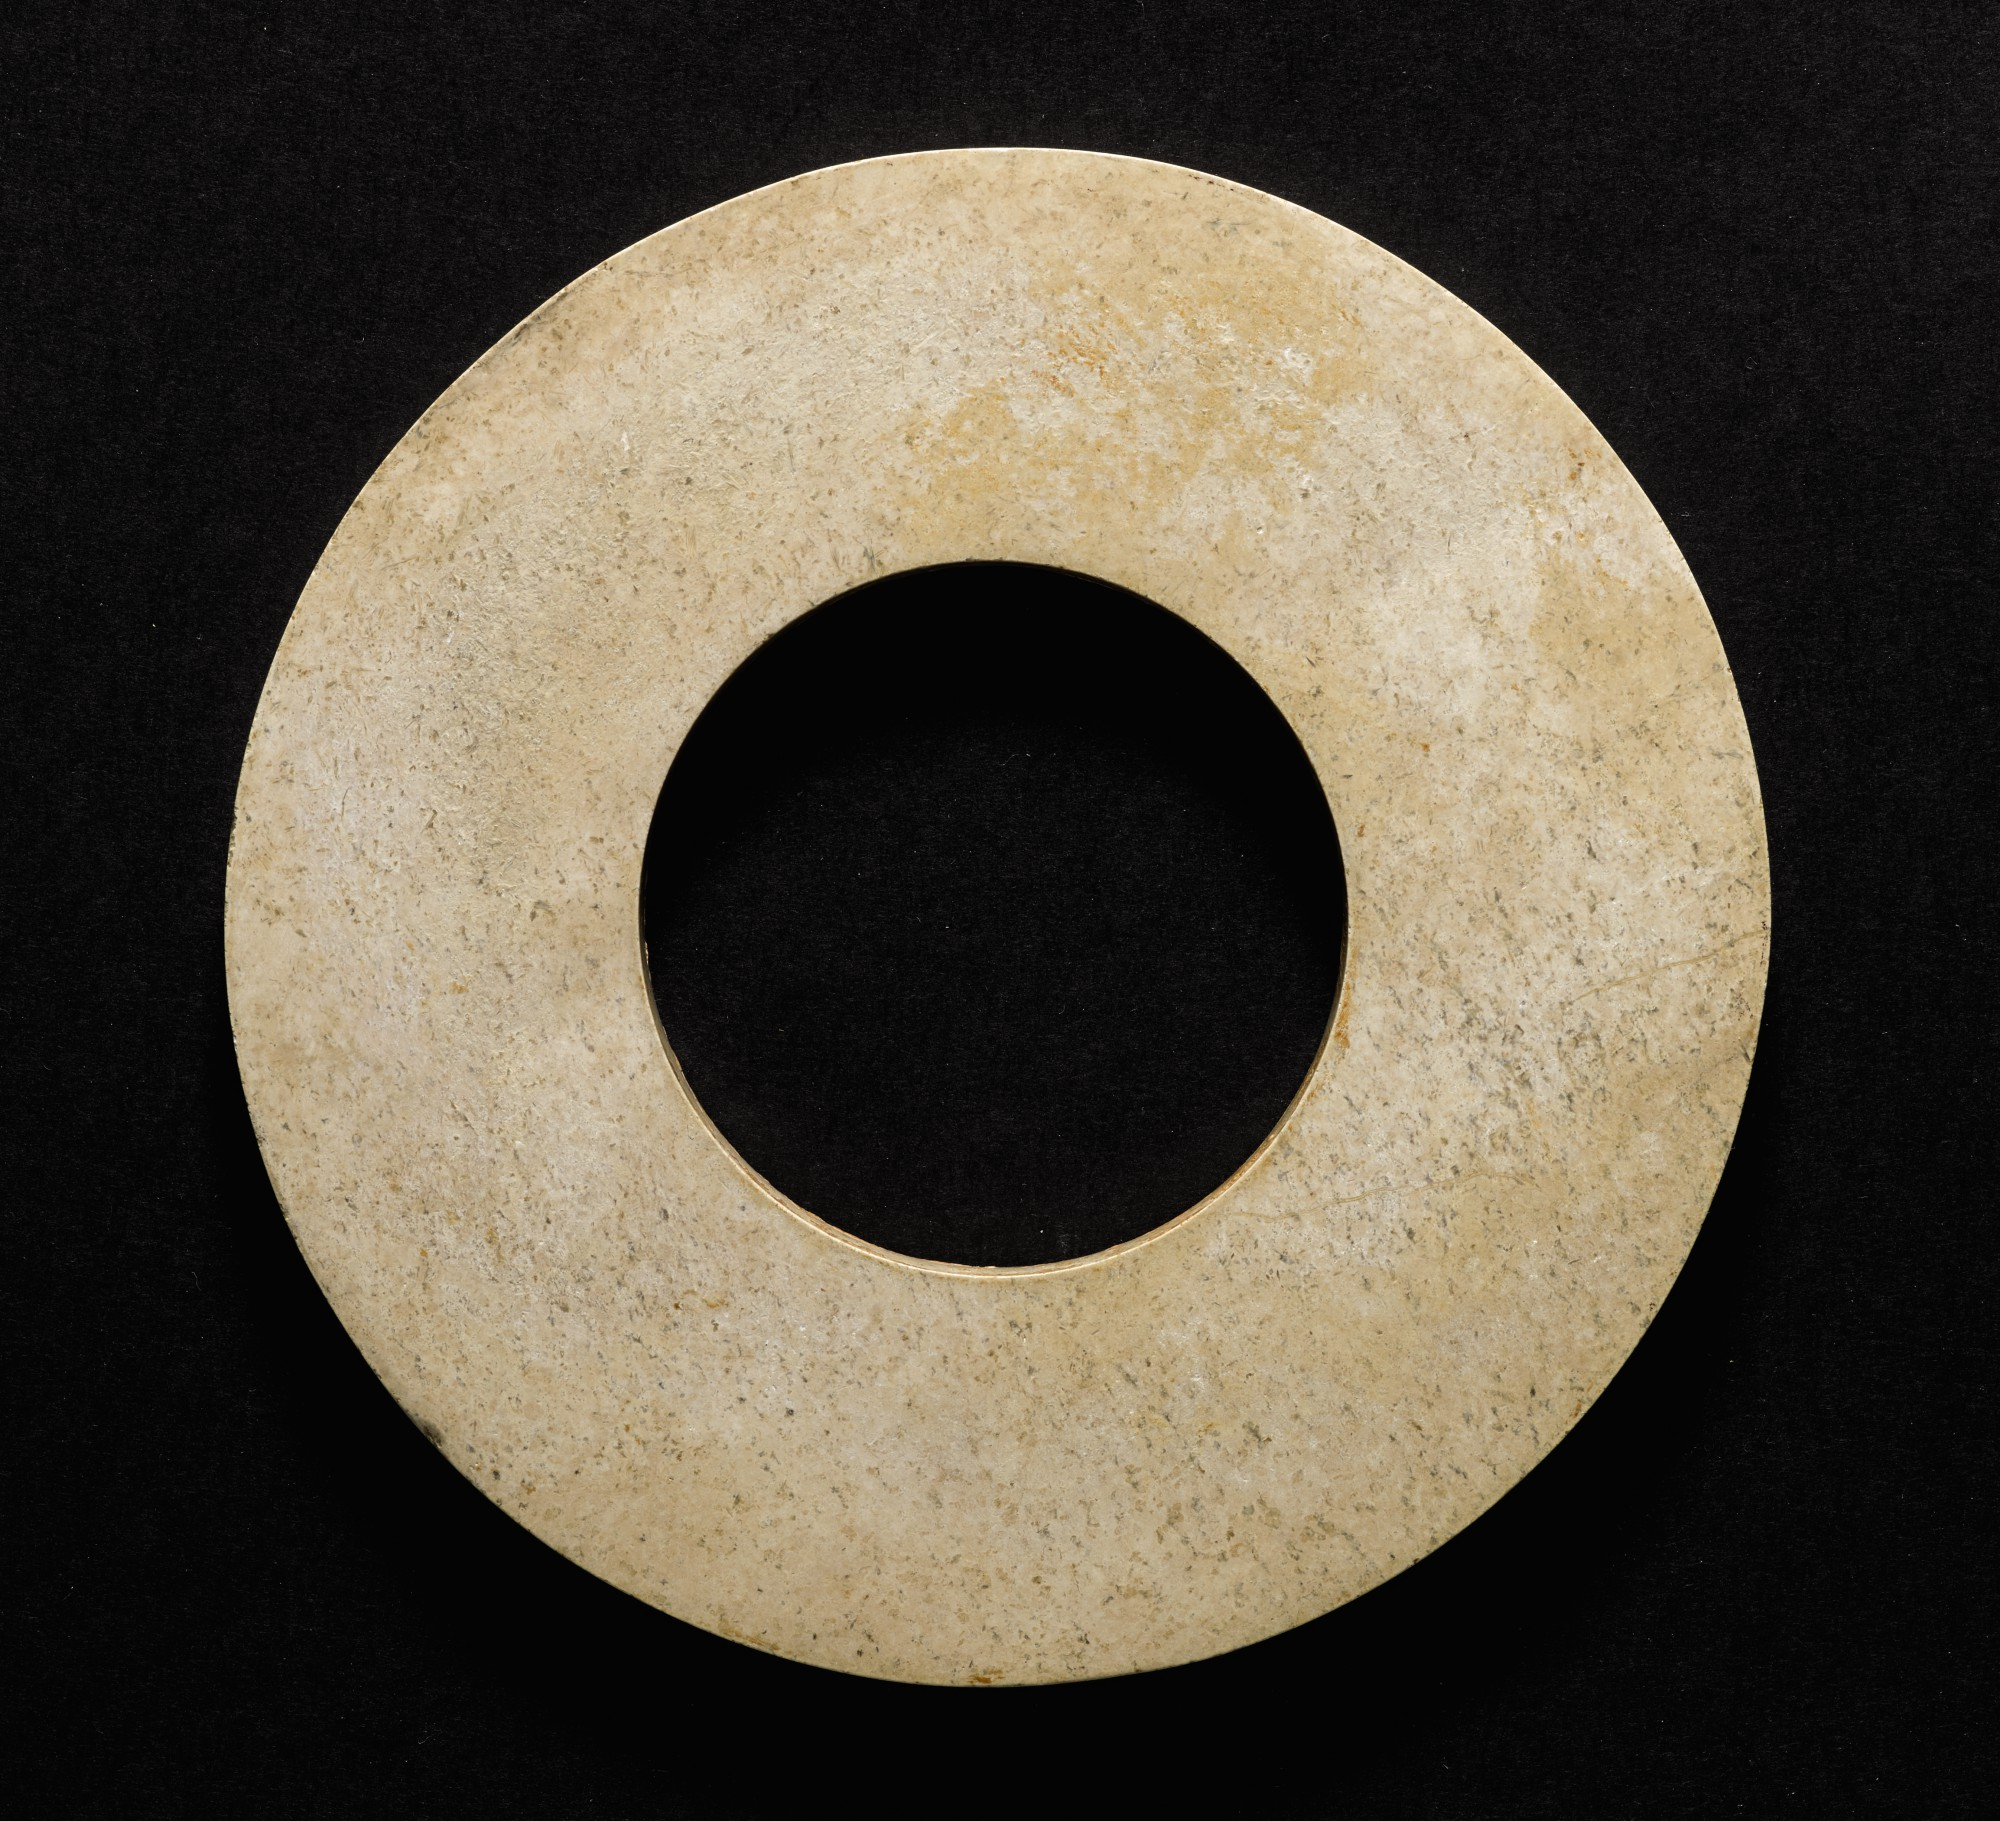 A JADE RING, HUAN NEOLITHIC PERIOD, LIANGZHU CULTURE   新石器時代 良渚文化玉環   Important Chinese Art   Chinese Works of Art   Sotheby's